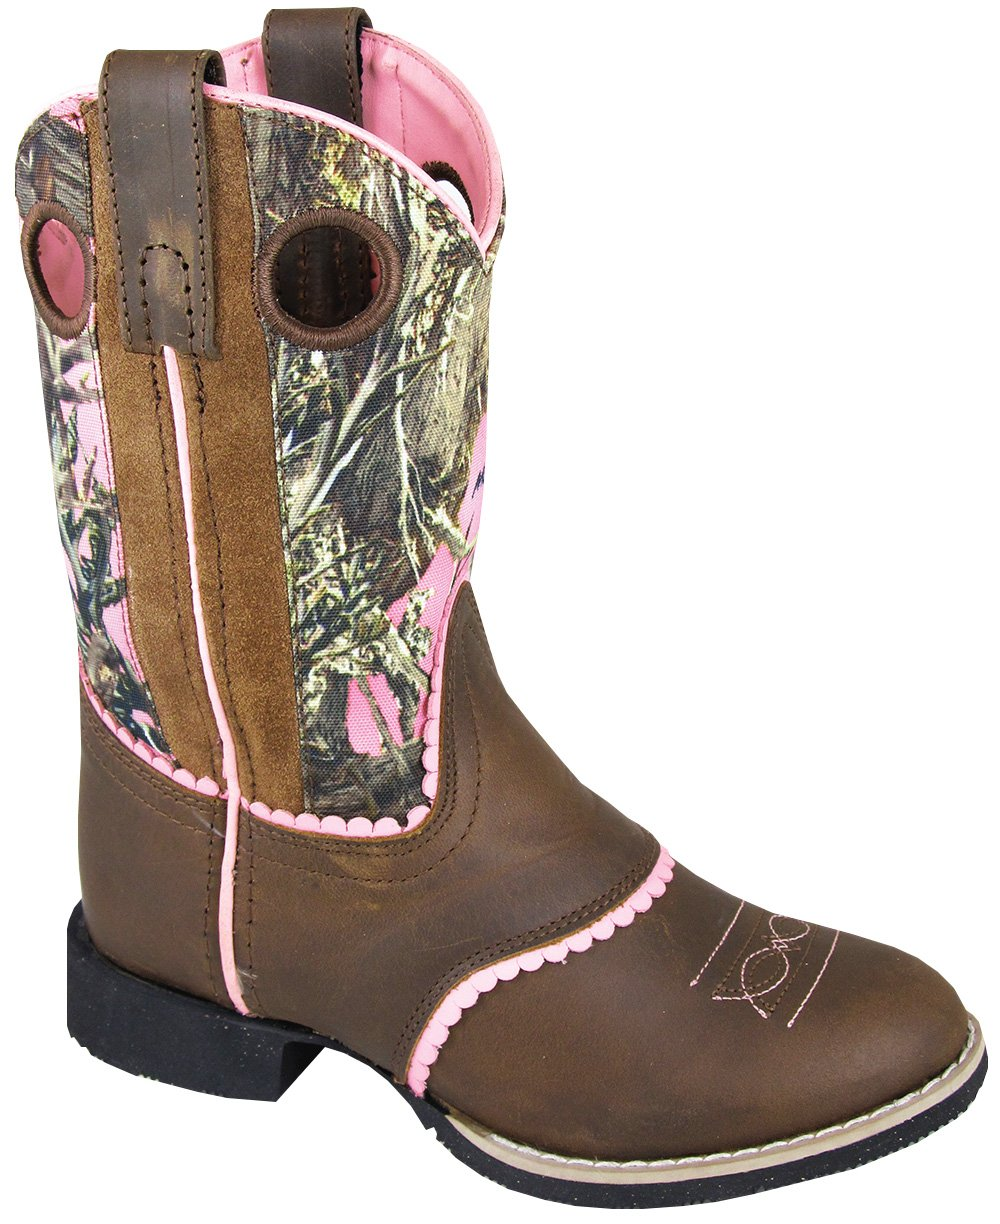 Smoky Mountain Childrens Girls Ruby Belle Brown/Pink Camo, 11M